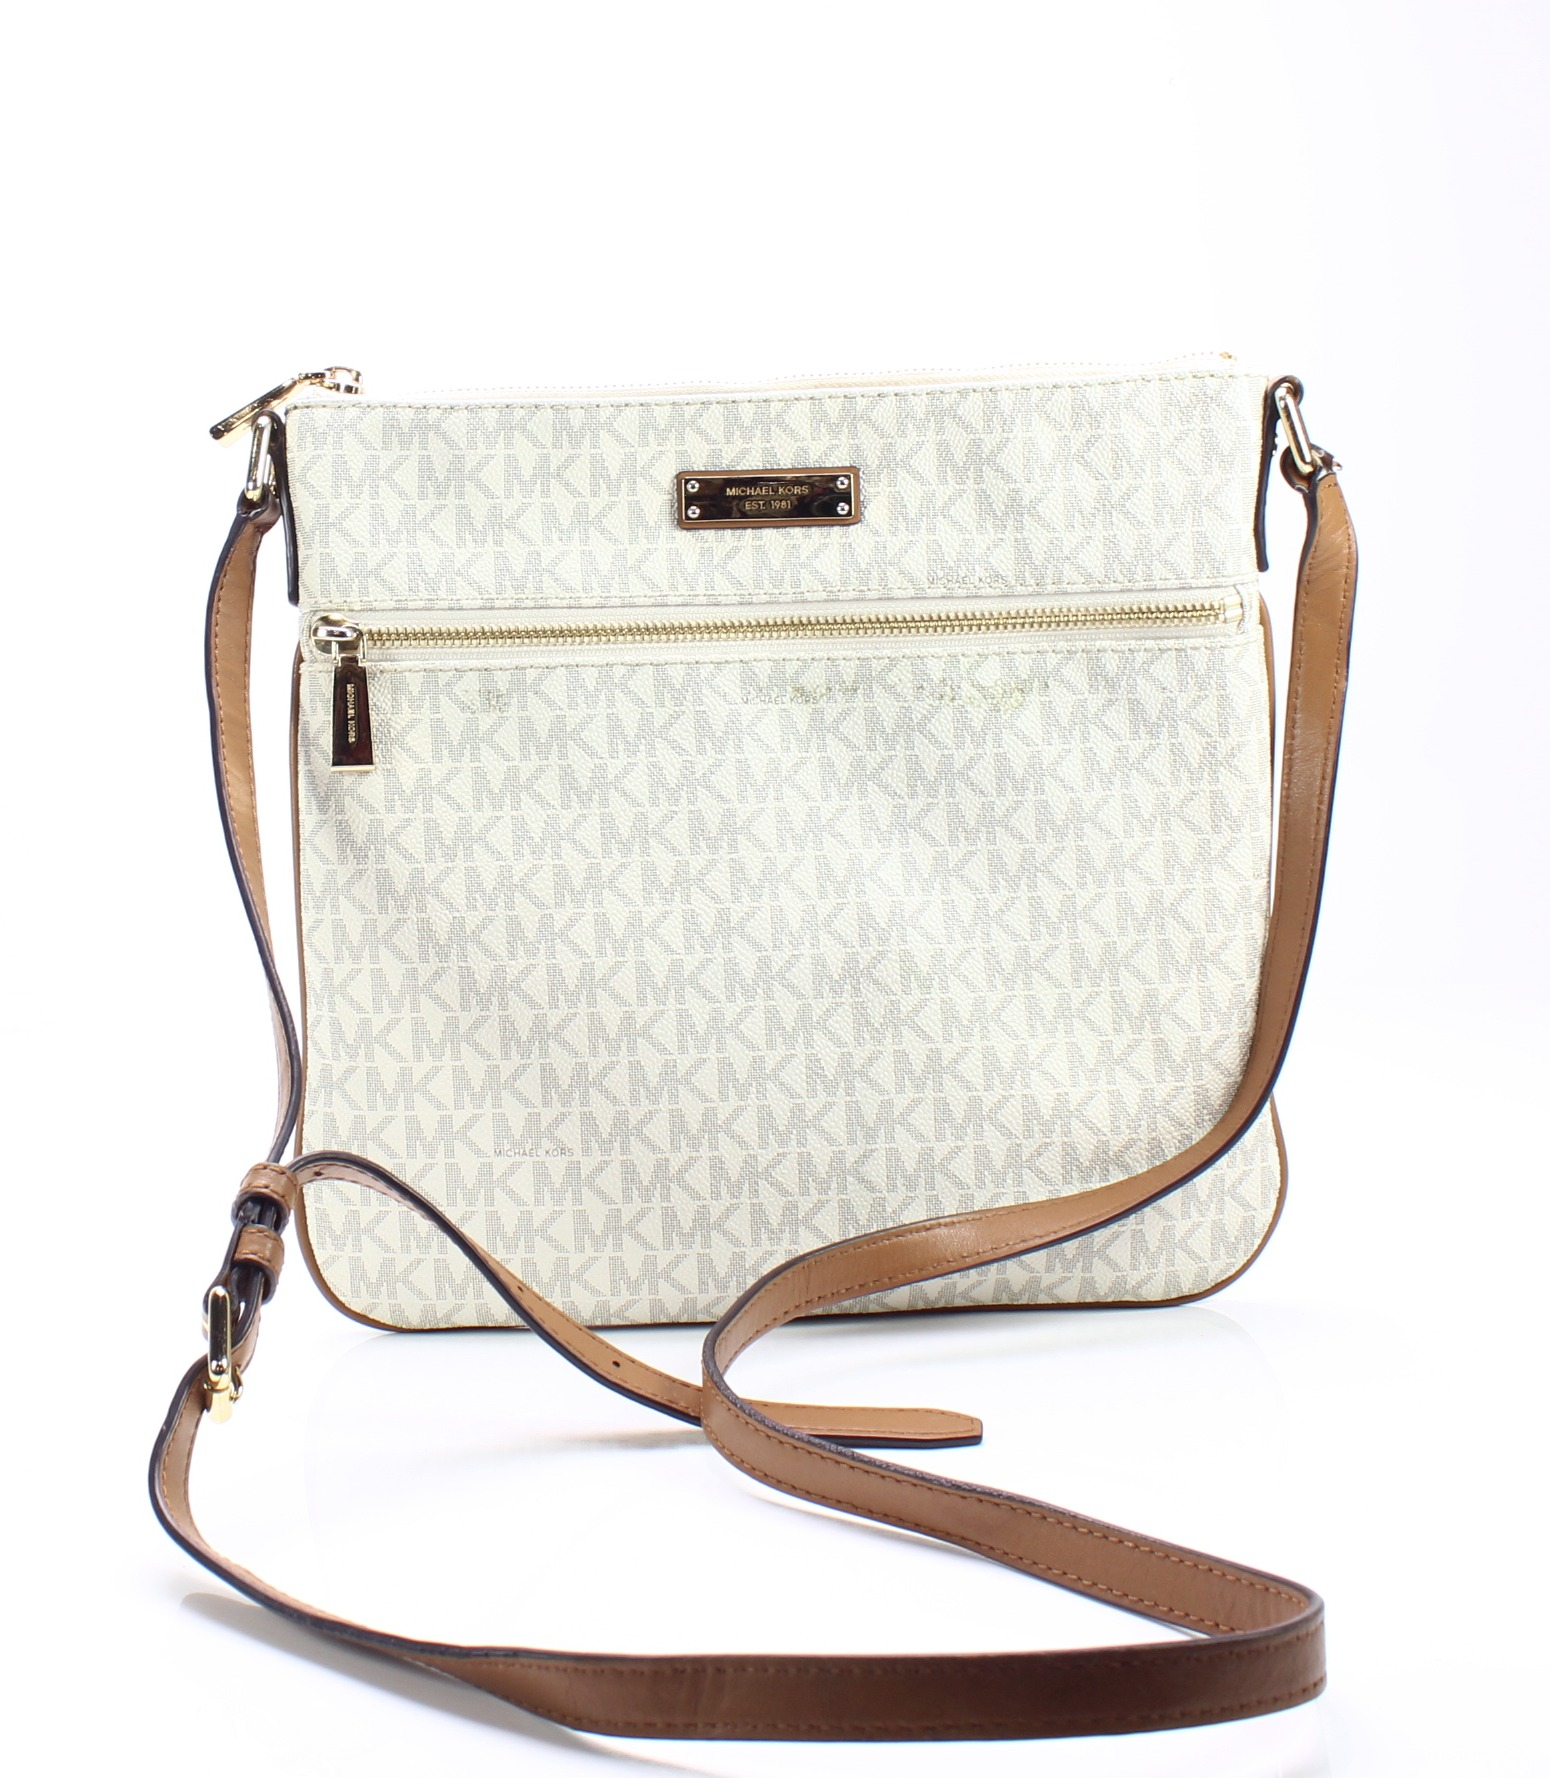 Michael Kors Vanilla White Signature Bedford Flat Small Crossbody Bag  178-   047 8604c6acdc39a